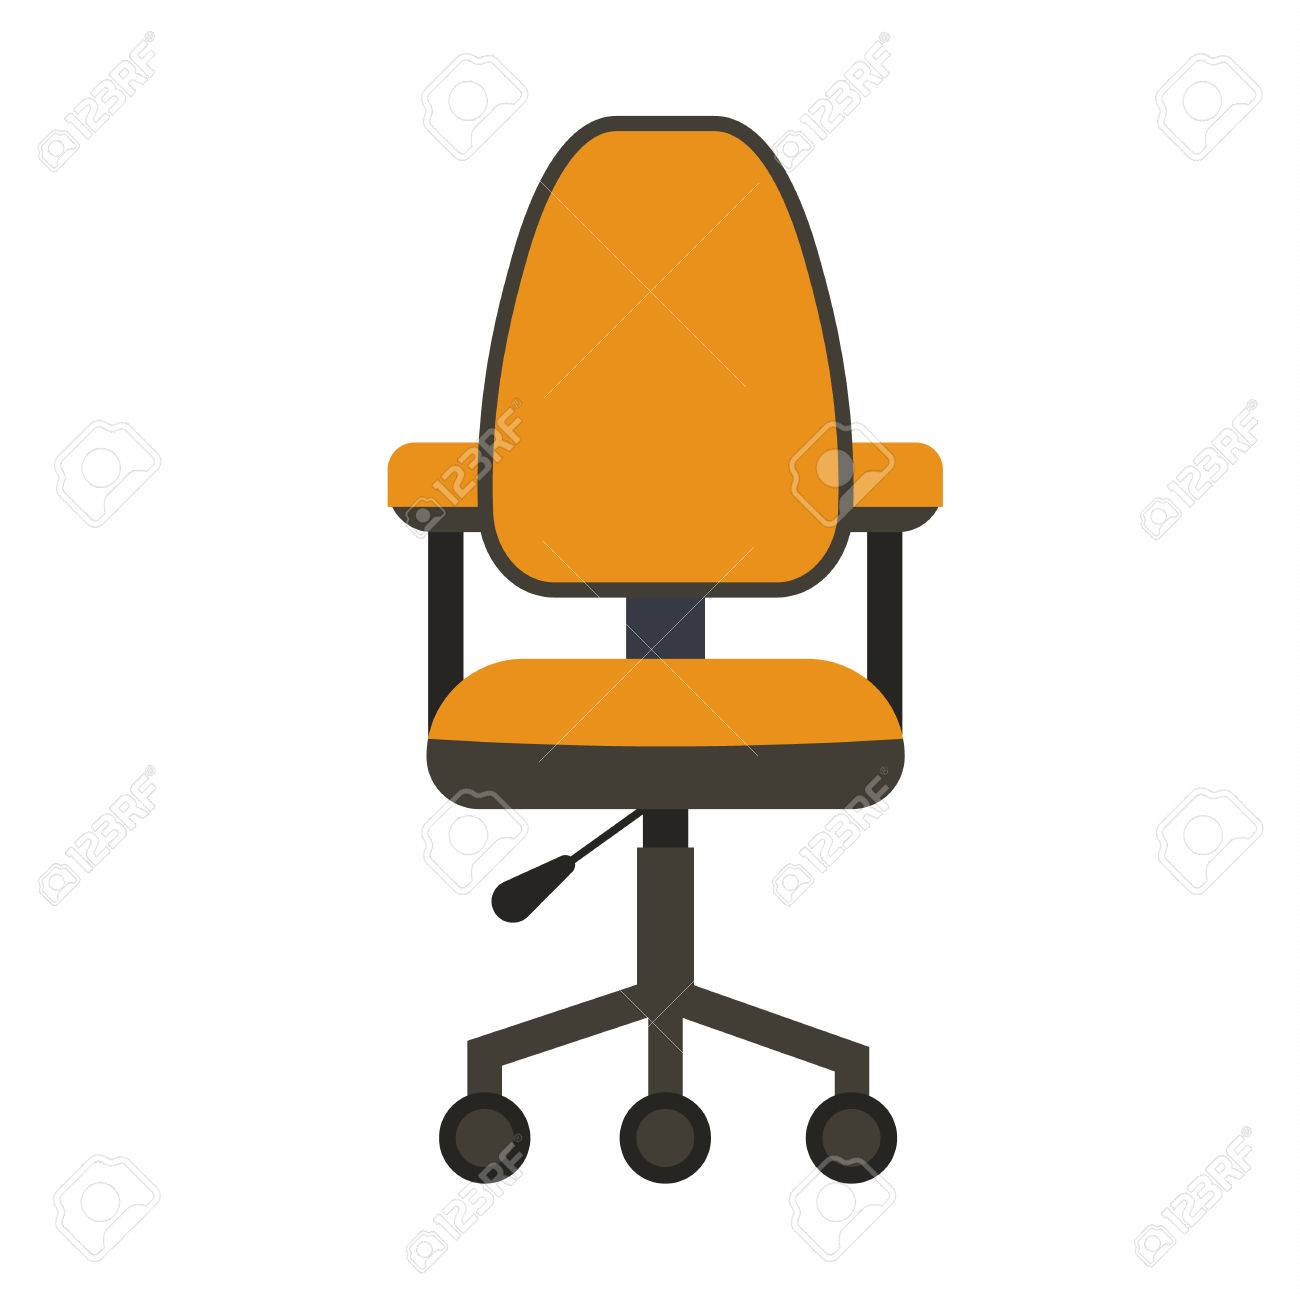 office chair illustration hanging ikea flat icon vector concept of cartoon desk